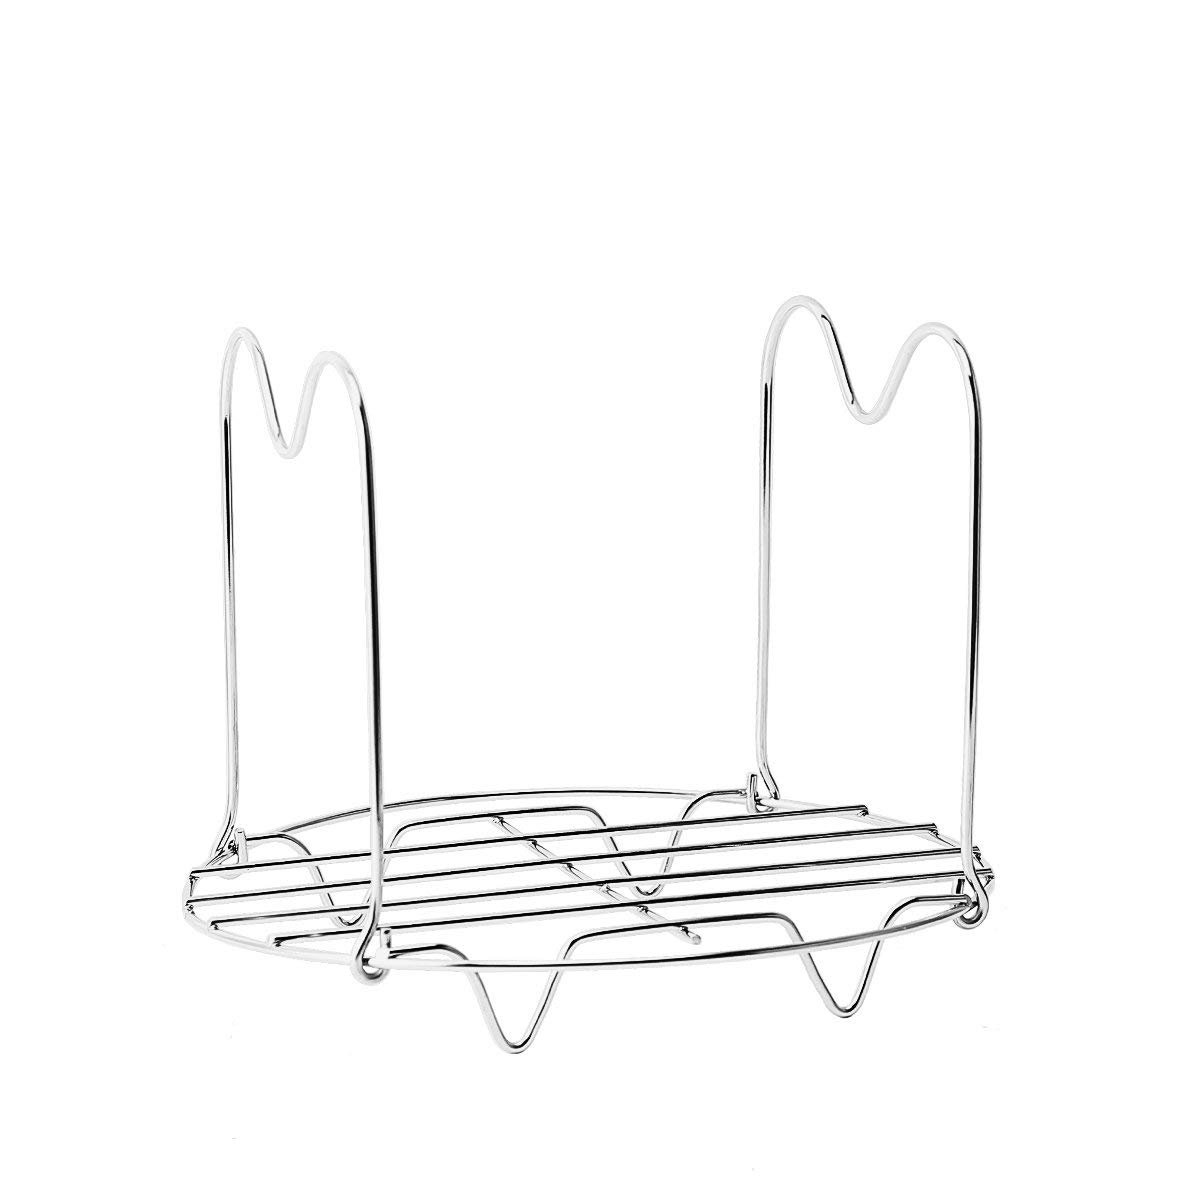 2 Pack Steamer Rack for Instant Pot 6 Qt 8 Qt 6 Quart 8 Quart Pressure Cooker,Stainless Steel Canning Rack Steam Rack Stand Steamer Rack Trivet with Handles for Cooking